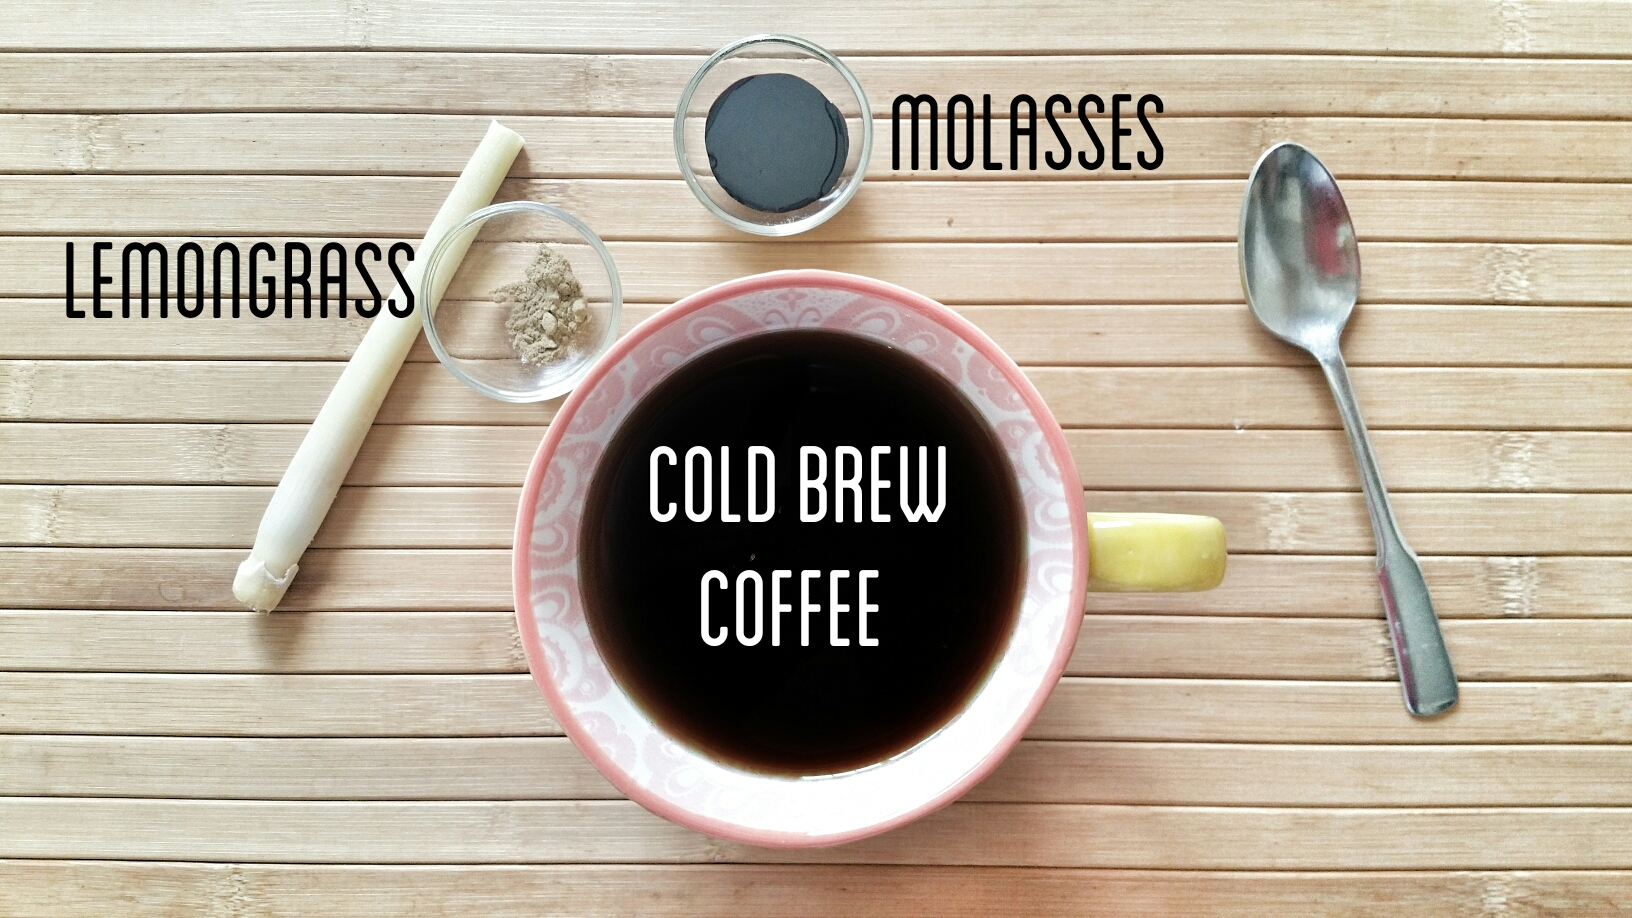 cold brew coffee with molasses and lemongrass